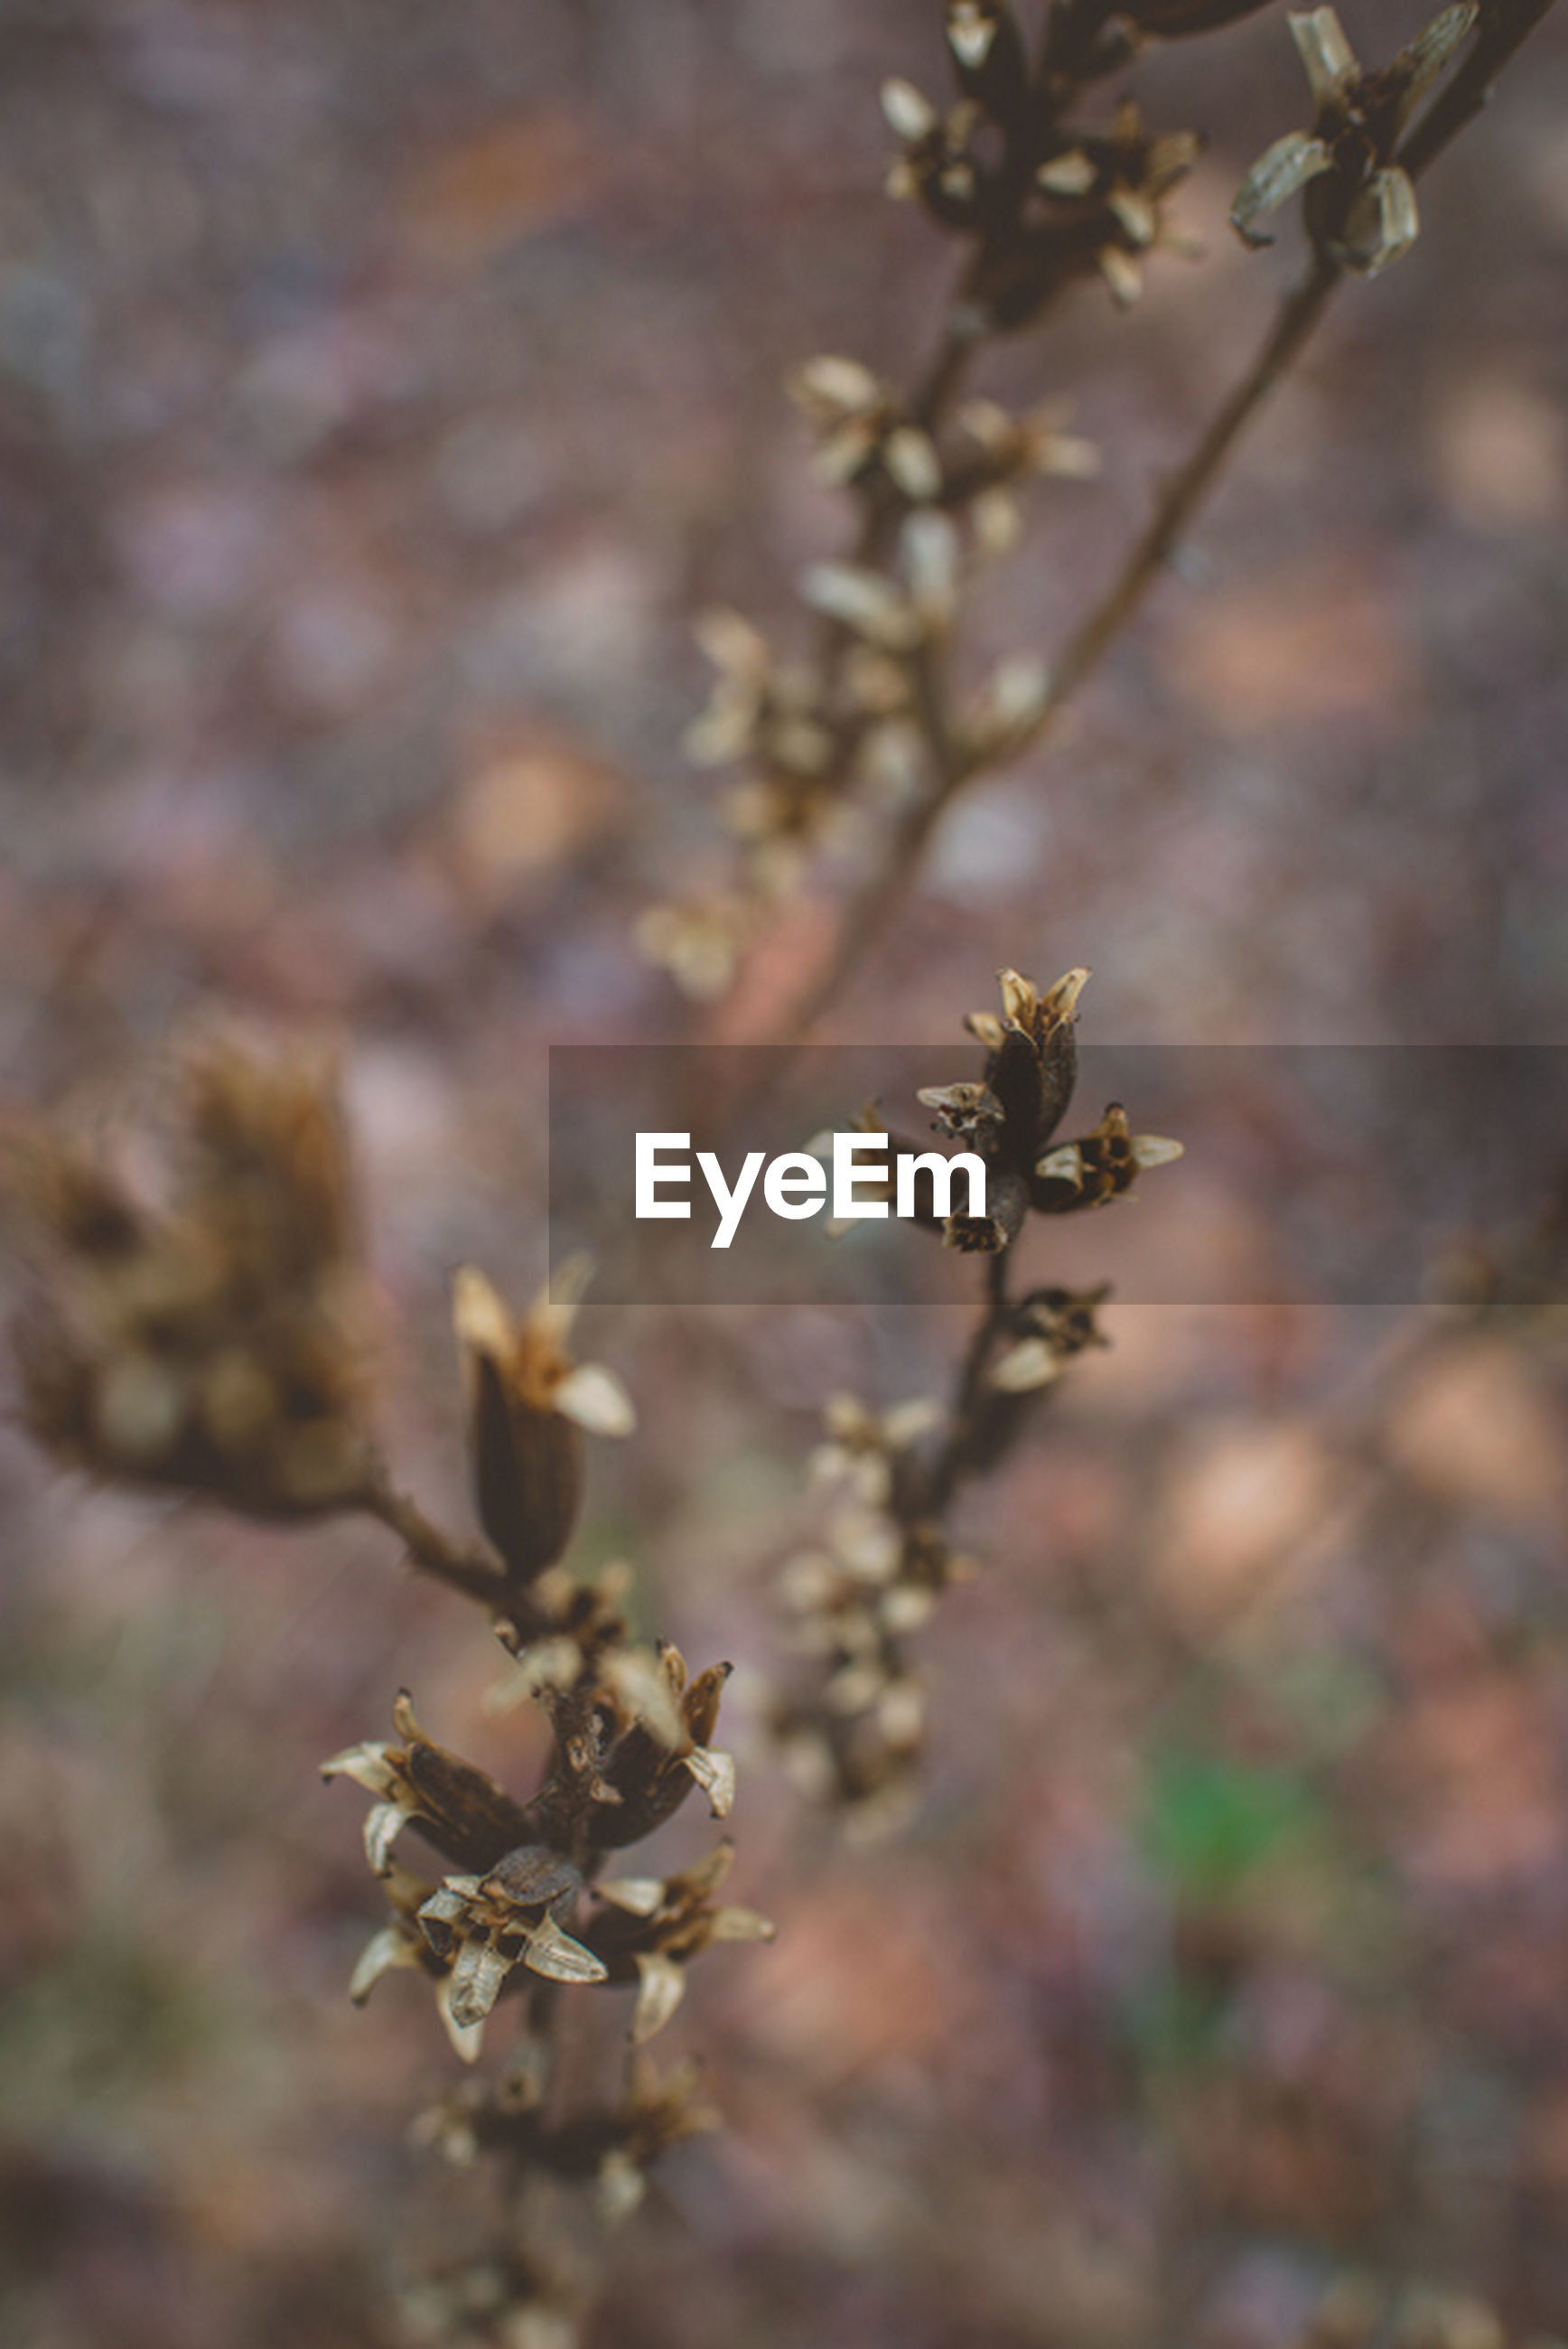 flower, growth, focus on foreground, plant, fragility, close-up, nature, freshness, selective focus, branch, beauty in nature, stem, twig, outdoors, day, no people, growing, petal, tree, bud